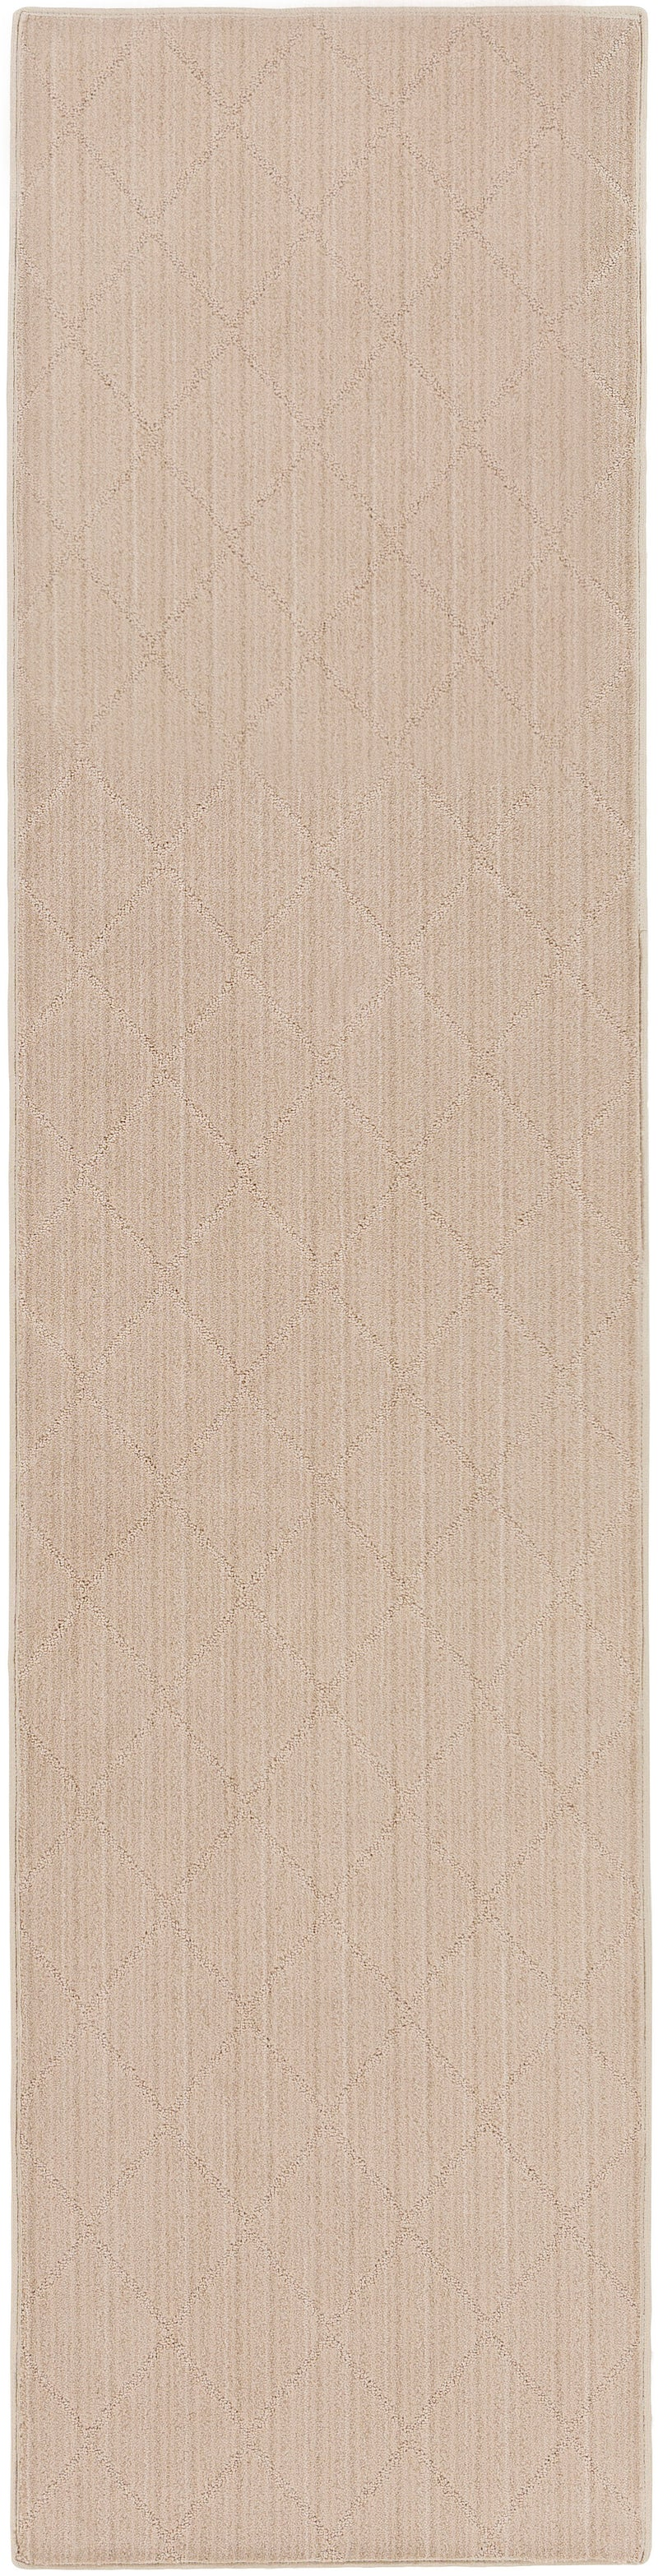 "Haywood HAW-1002 18"" Sample Made to Order Rugs"